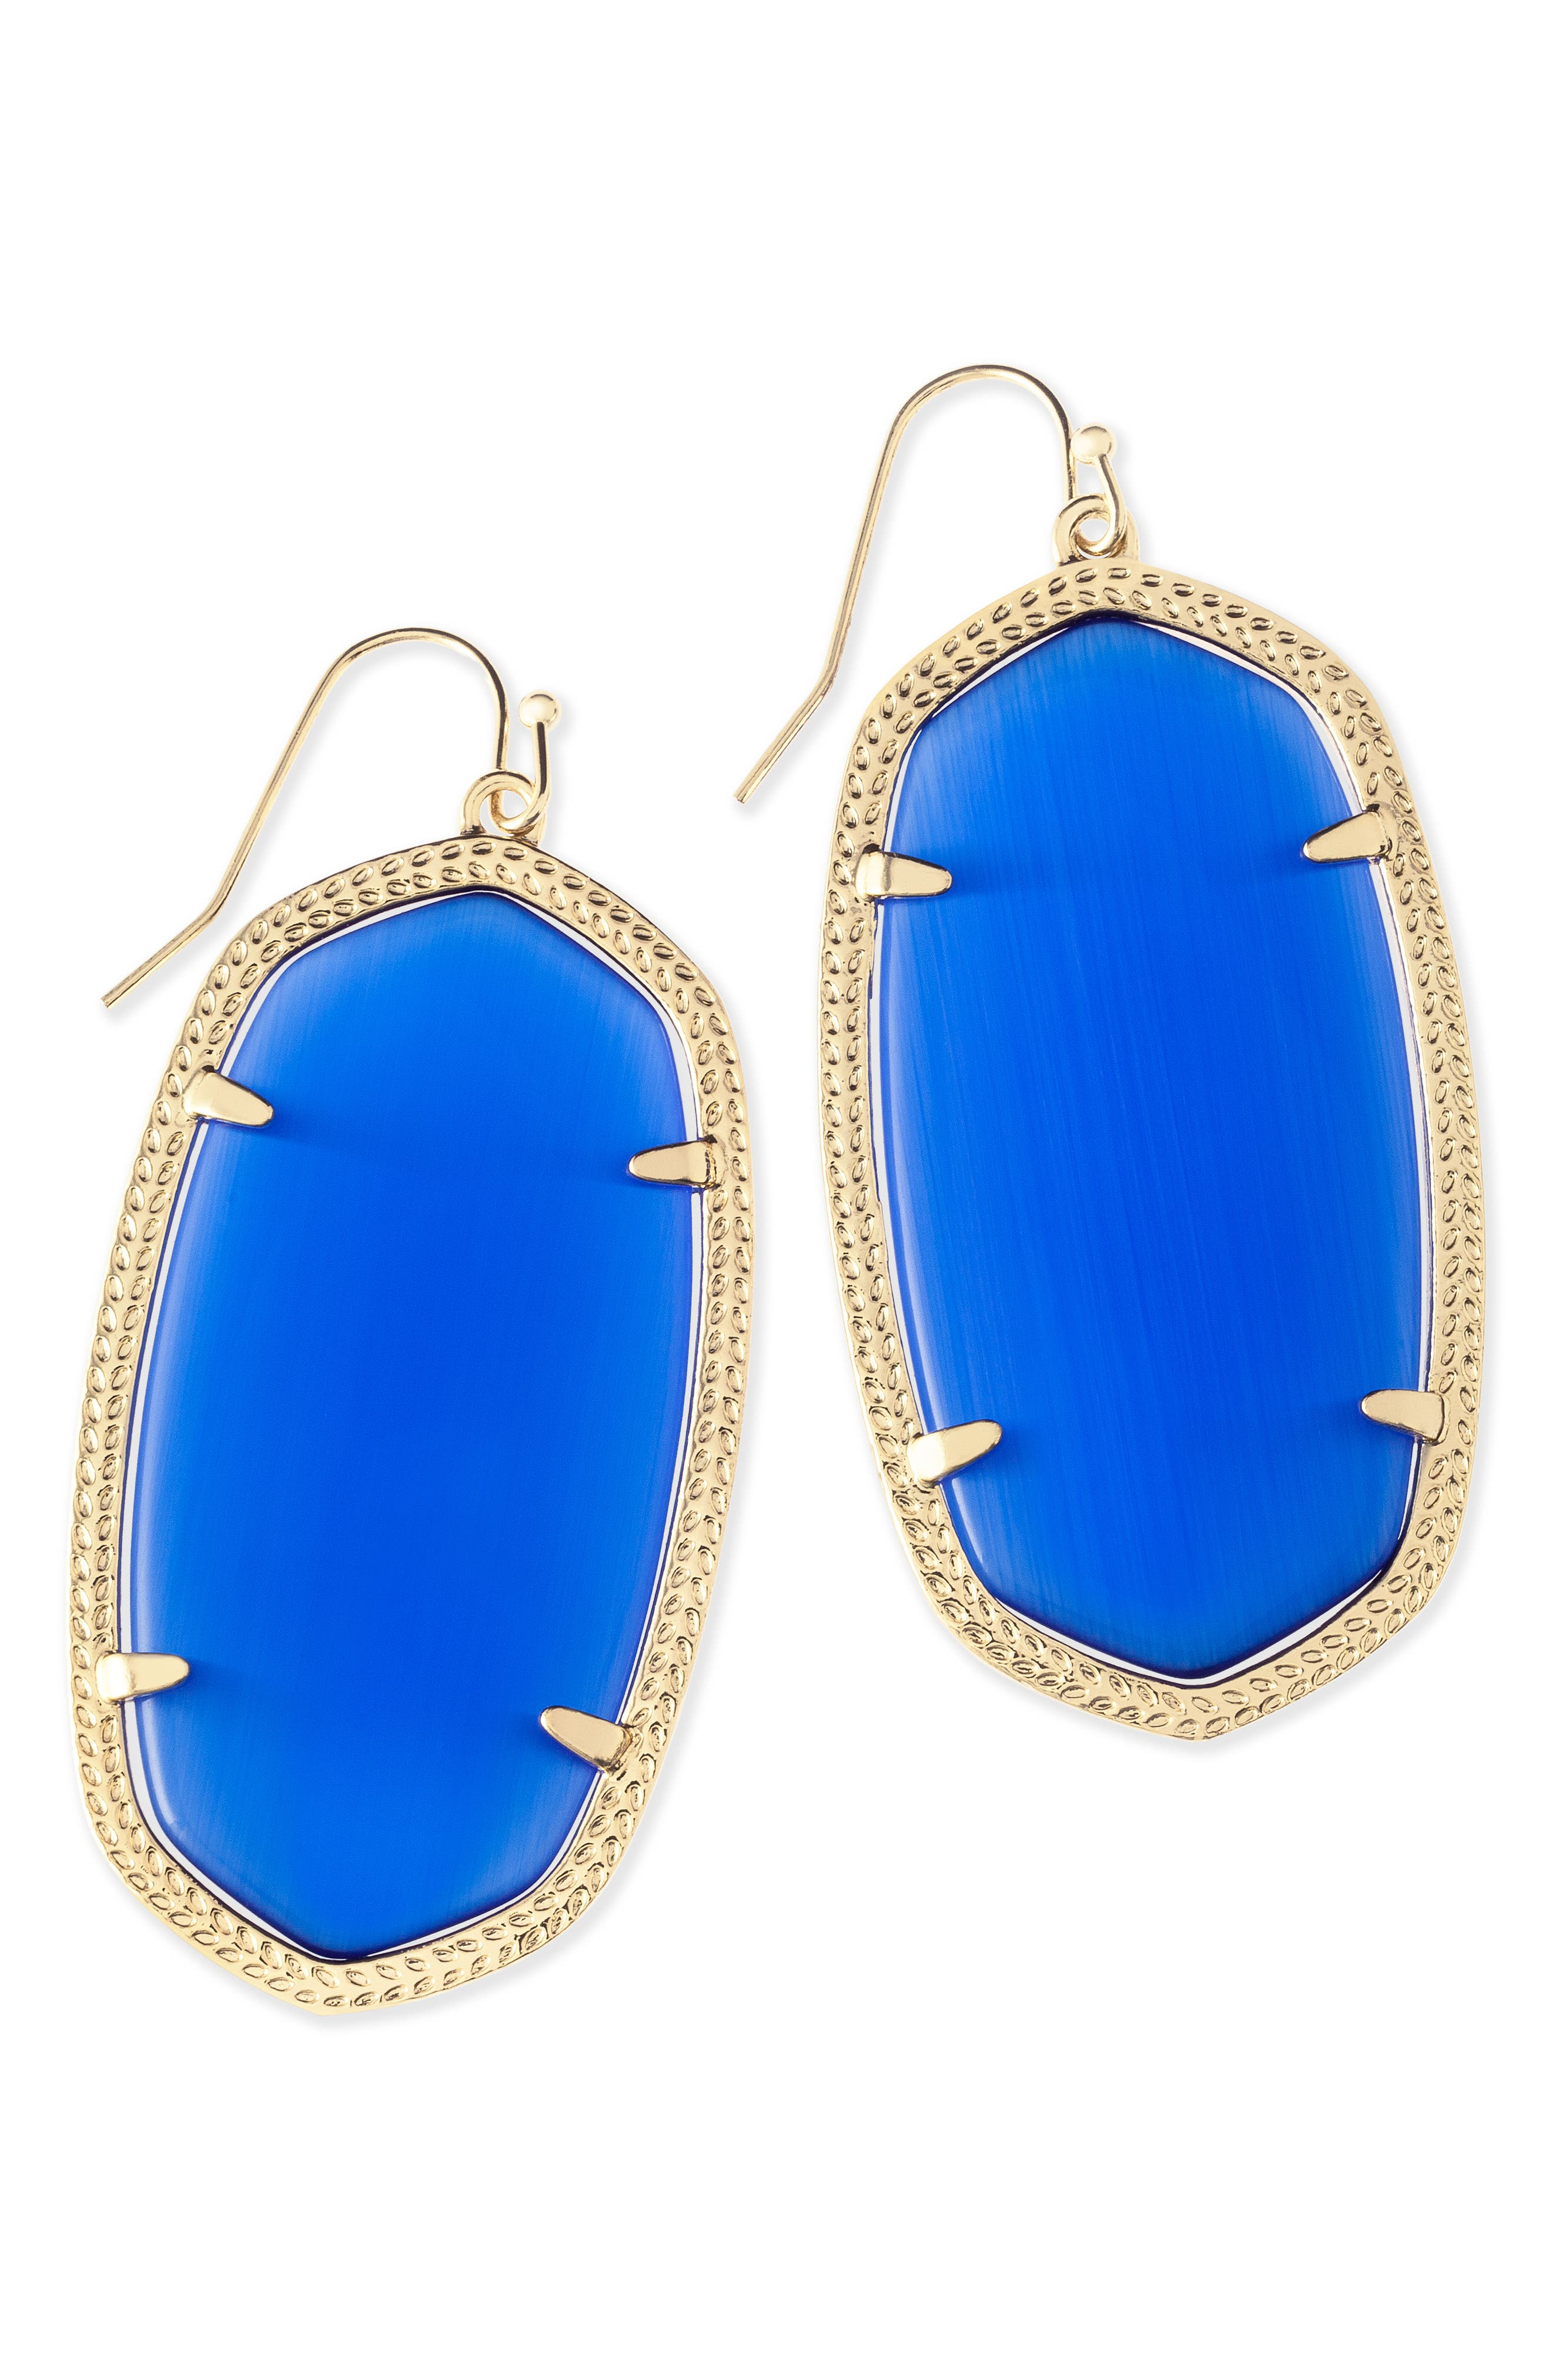 Danielle - Large Oval Statement Earrings,                             Alternate thumbnail 105, color,